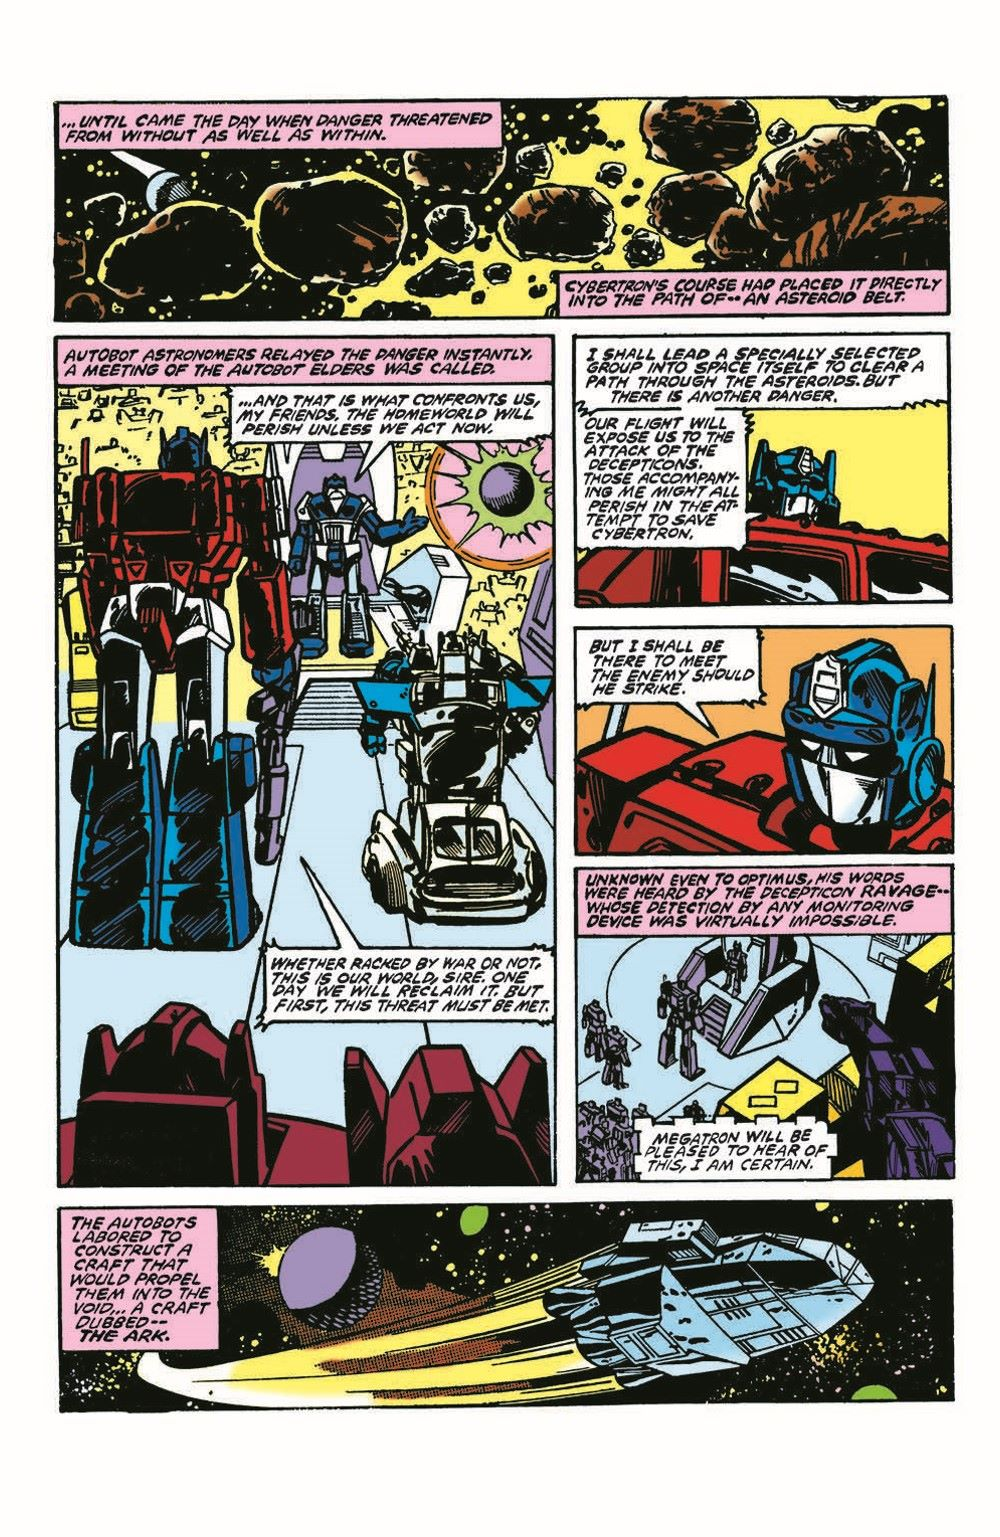 TF84-100PgGiant-pr-7 ComicList Previews: TRANSFORMERS '84 LEGENDS AND RUMORS 100-PAGE GIANT #1